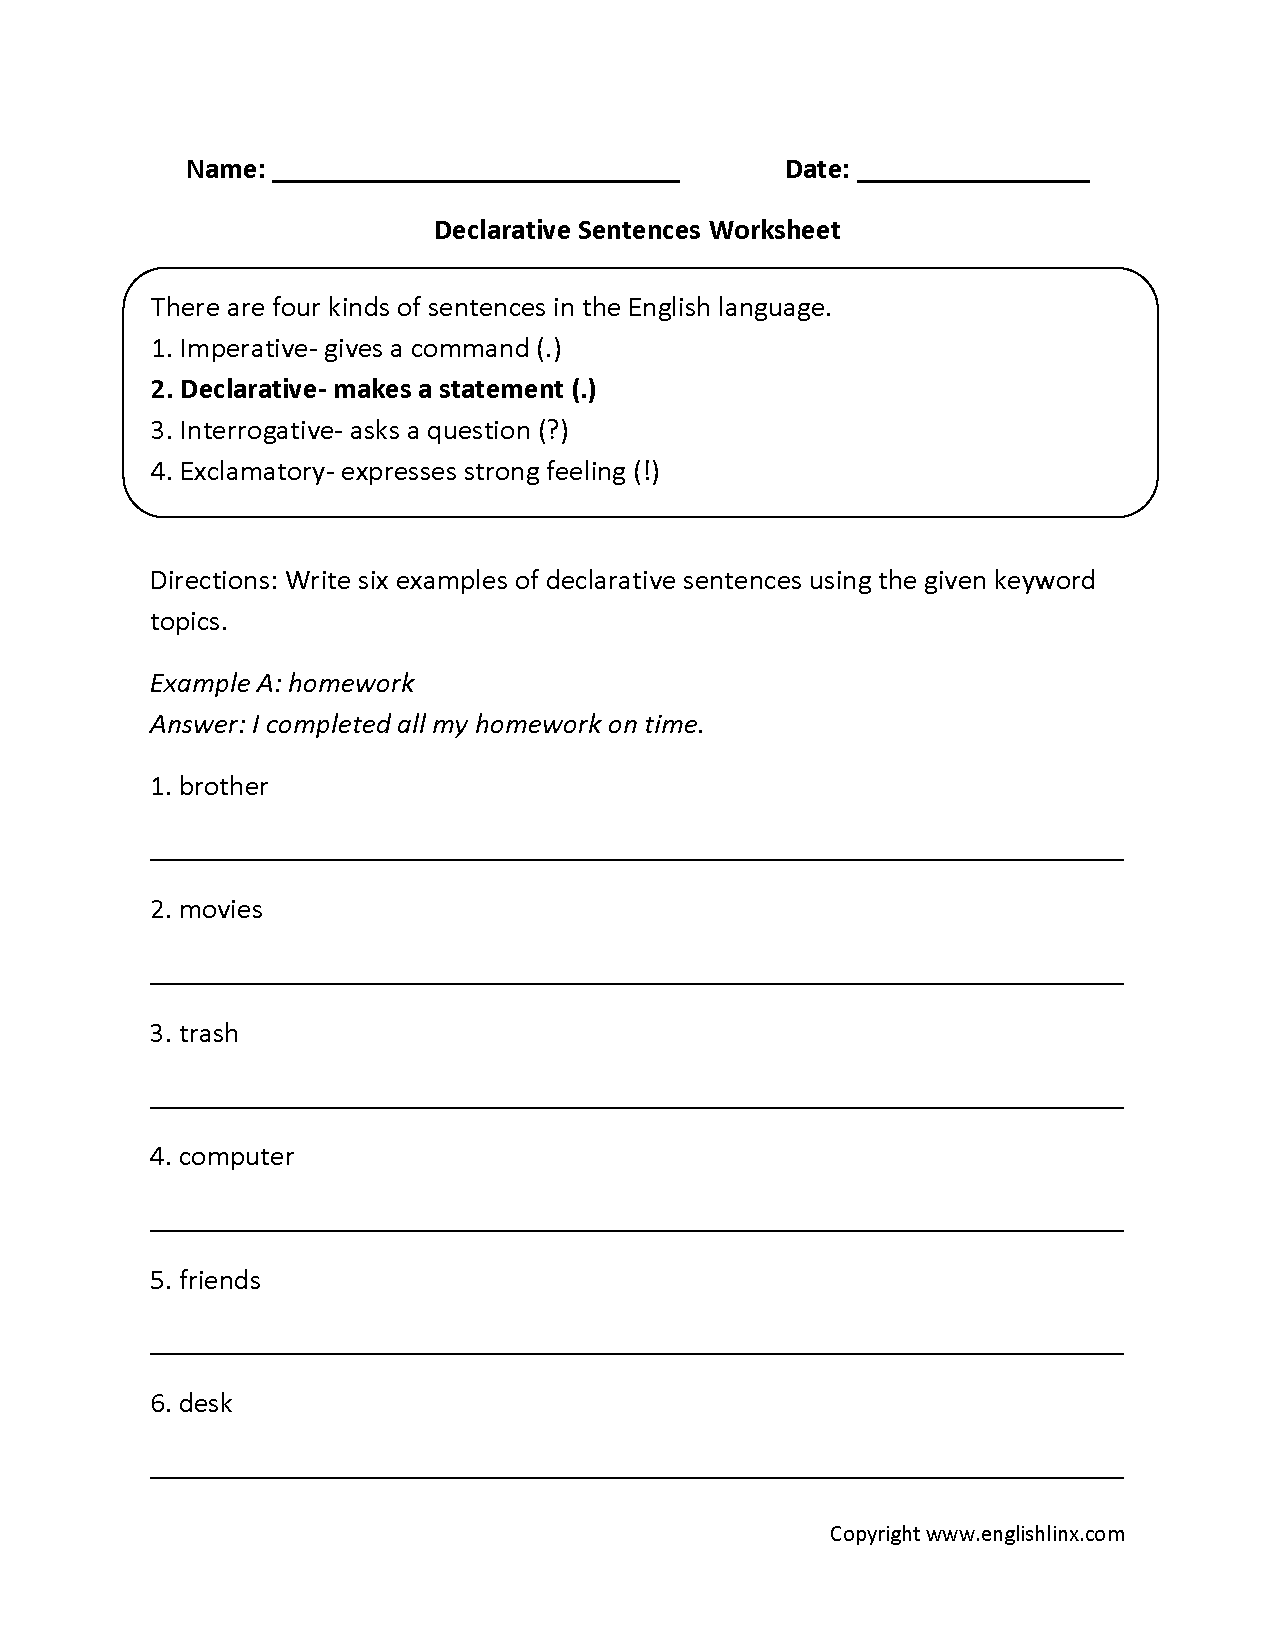 Declarative Types Of Sentences Worksheets